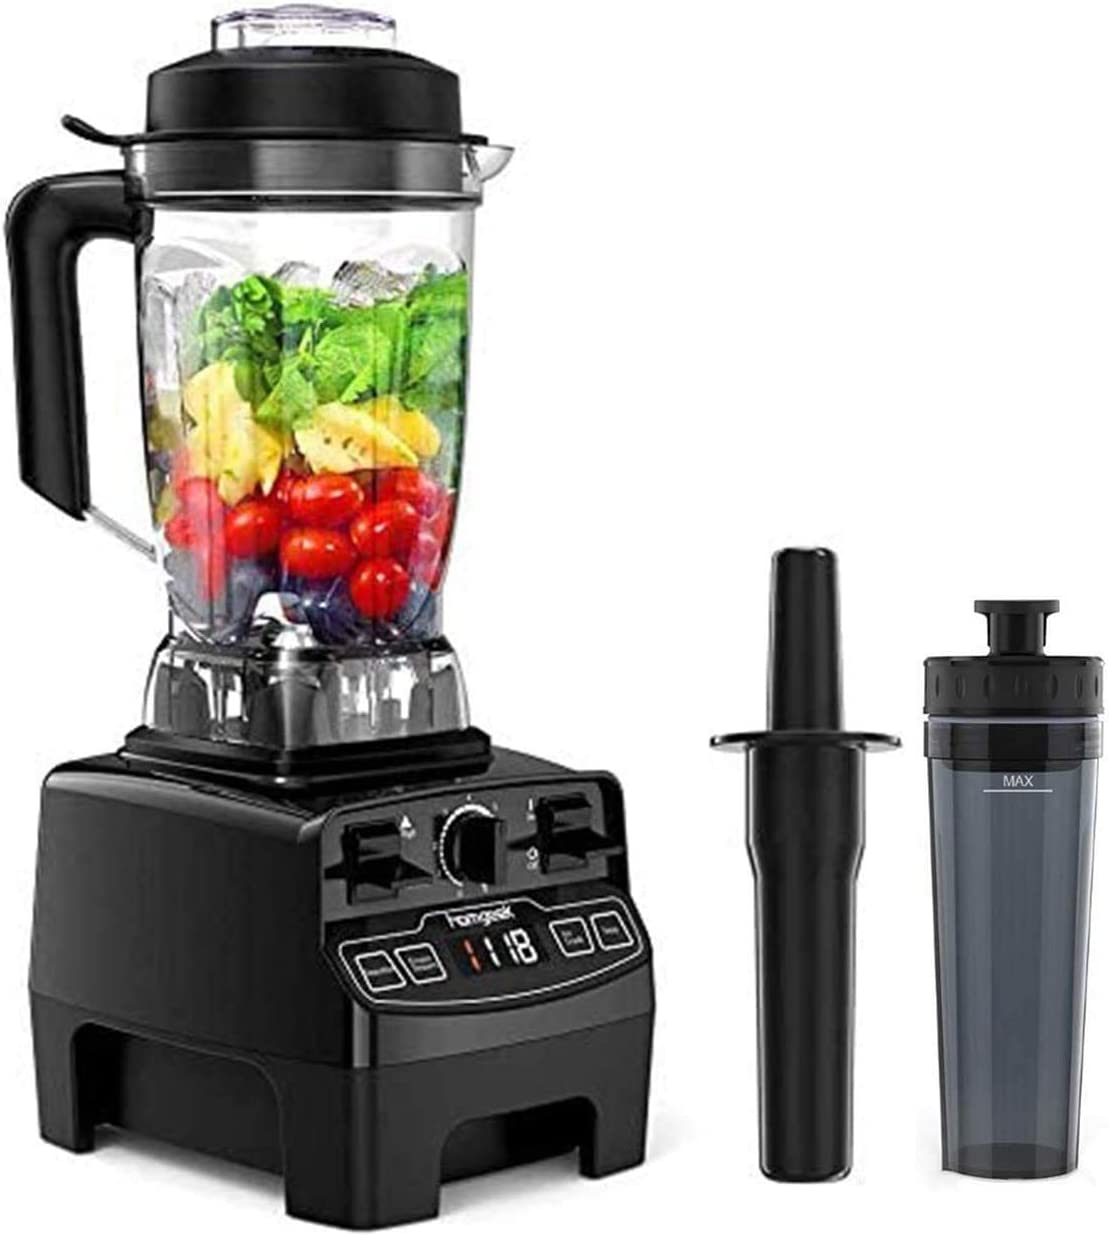 Blender 1450w, Homgeek Professional Countertop Blender Smoothie Maker with 68oz BPA Free Tritan Container, High Speed Power Blender Built-in Timer for Crusing Ice, Frozen Desser [2020 Update Version]